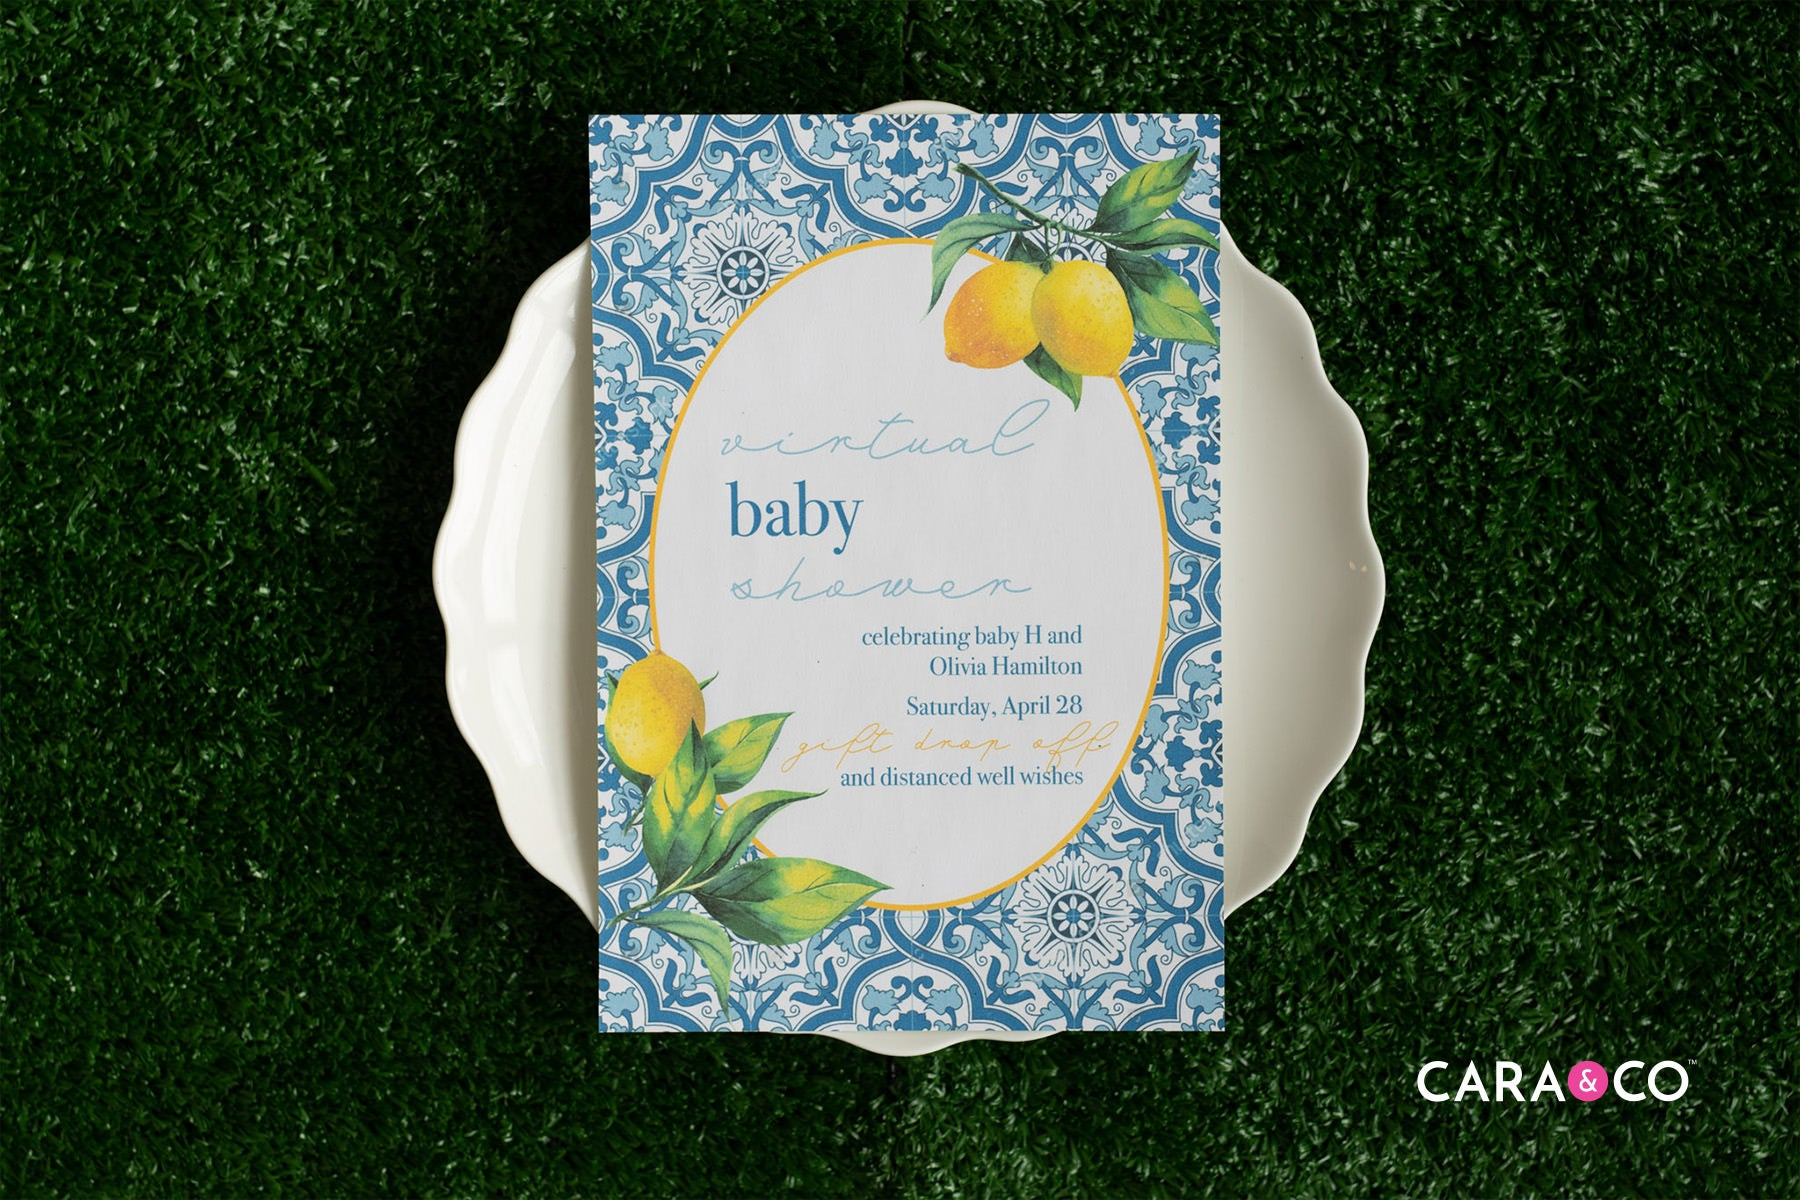 Baby Shower Invitation Ideas 2021